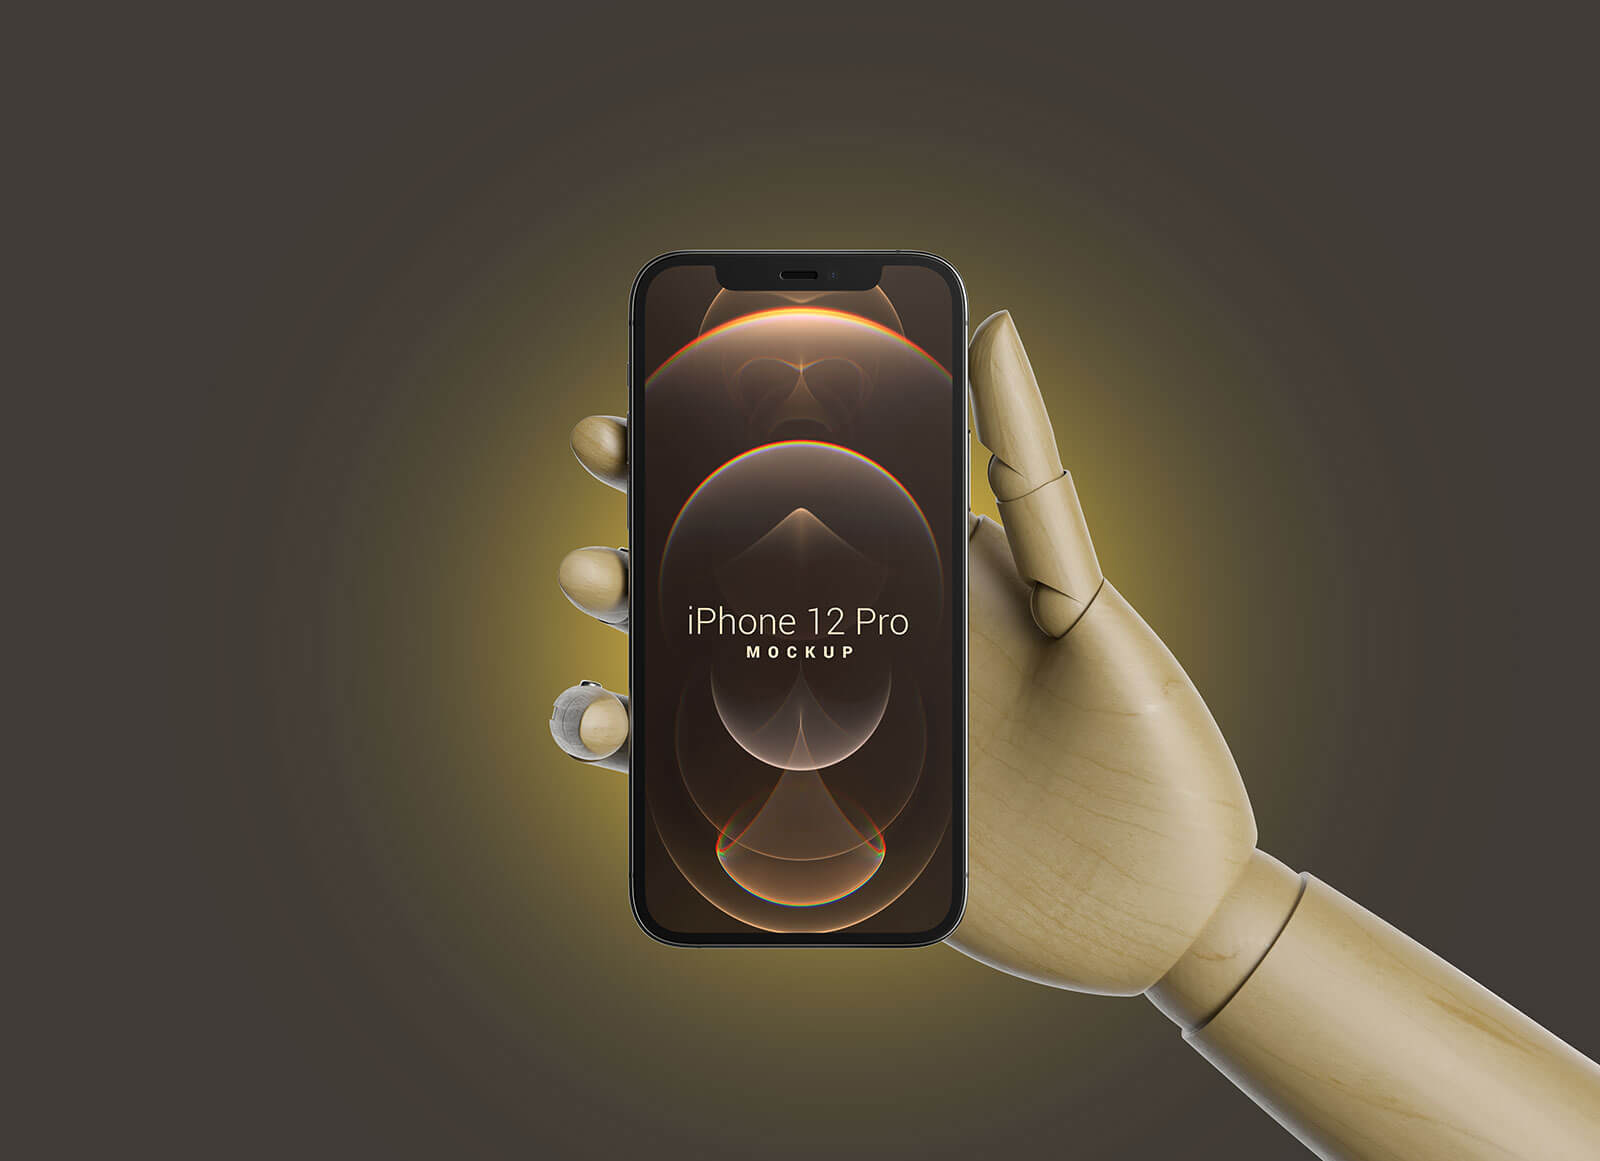 Free-Wooden-Hand-Holding-iPhone-12-Pro-Mockup-PSD